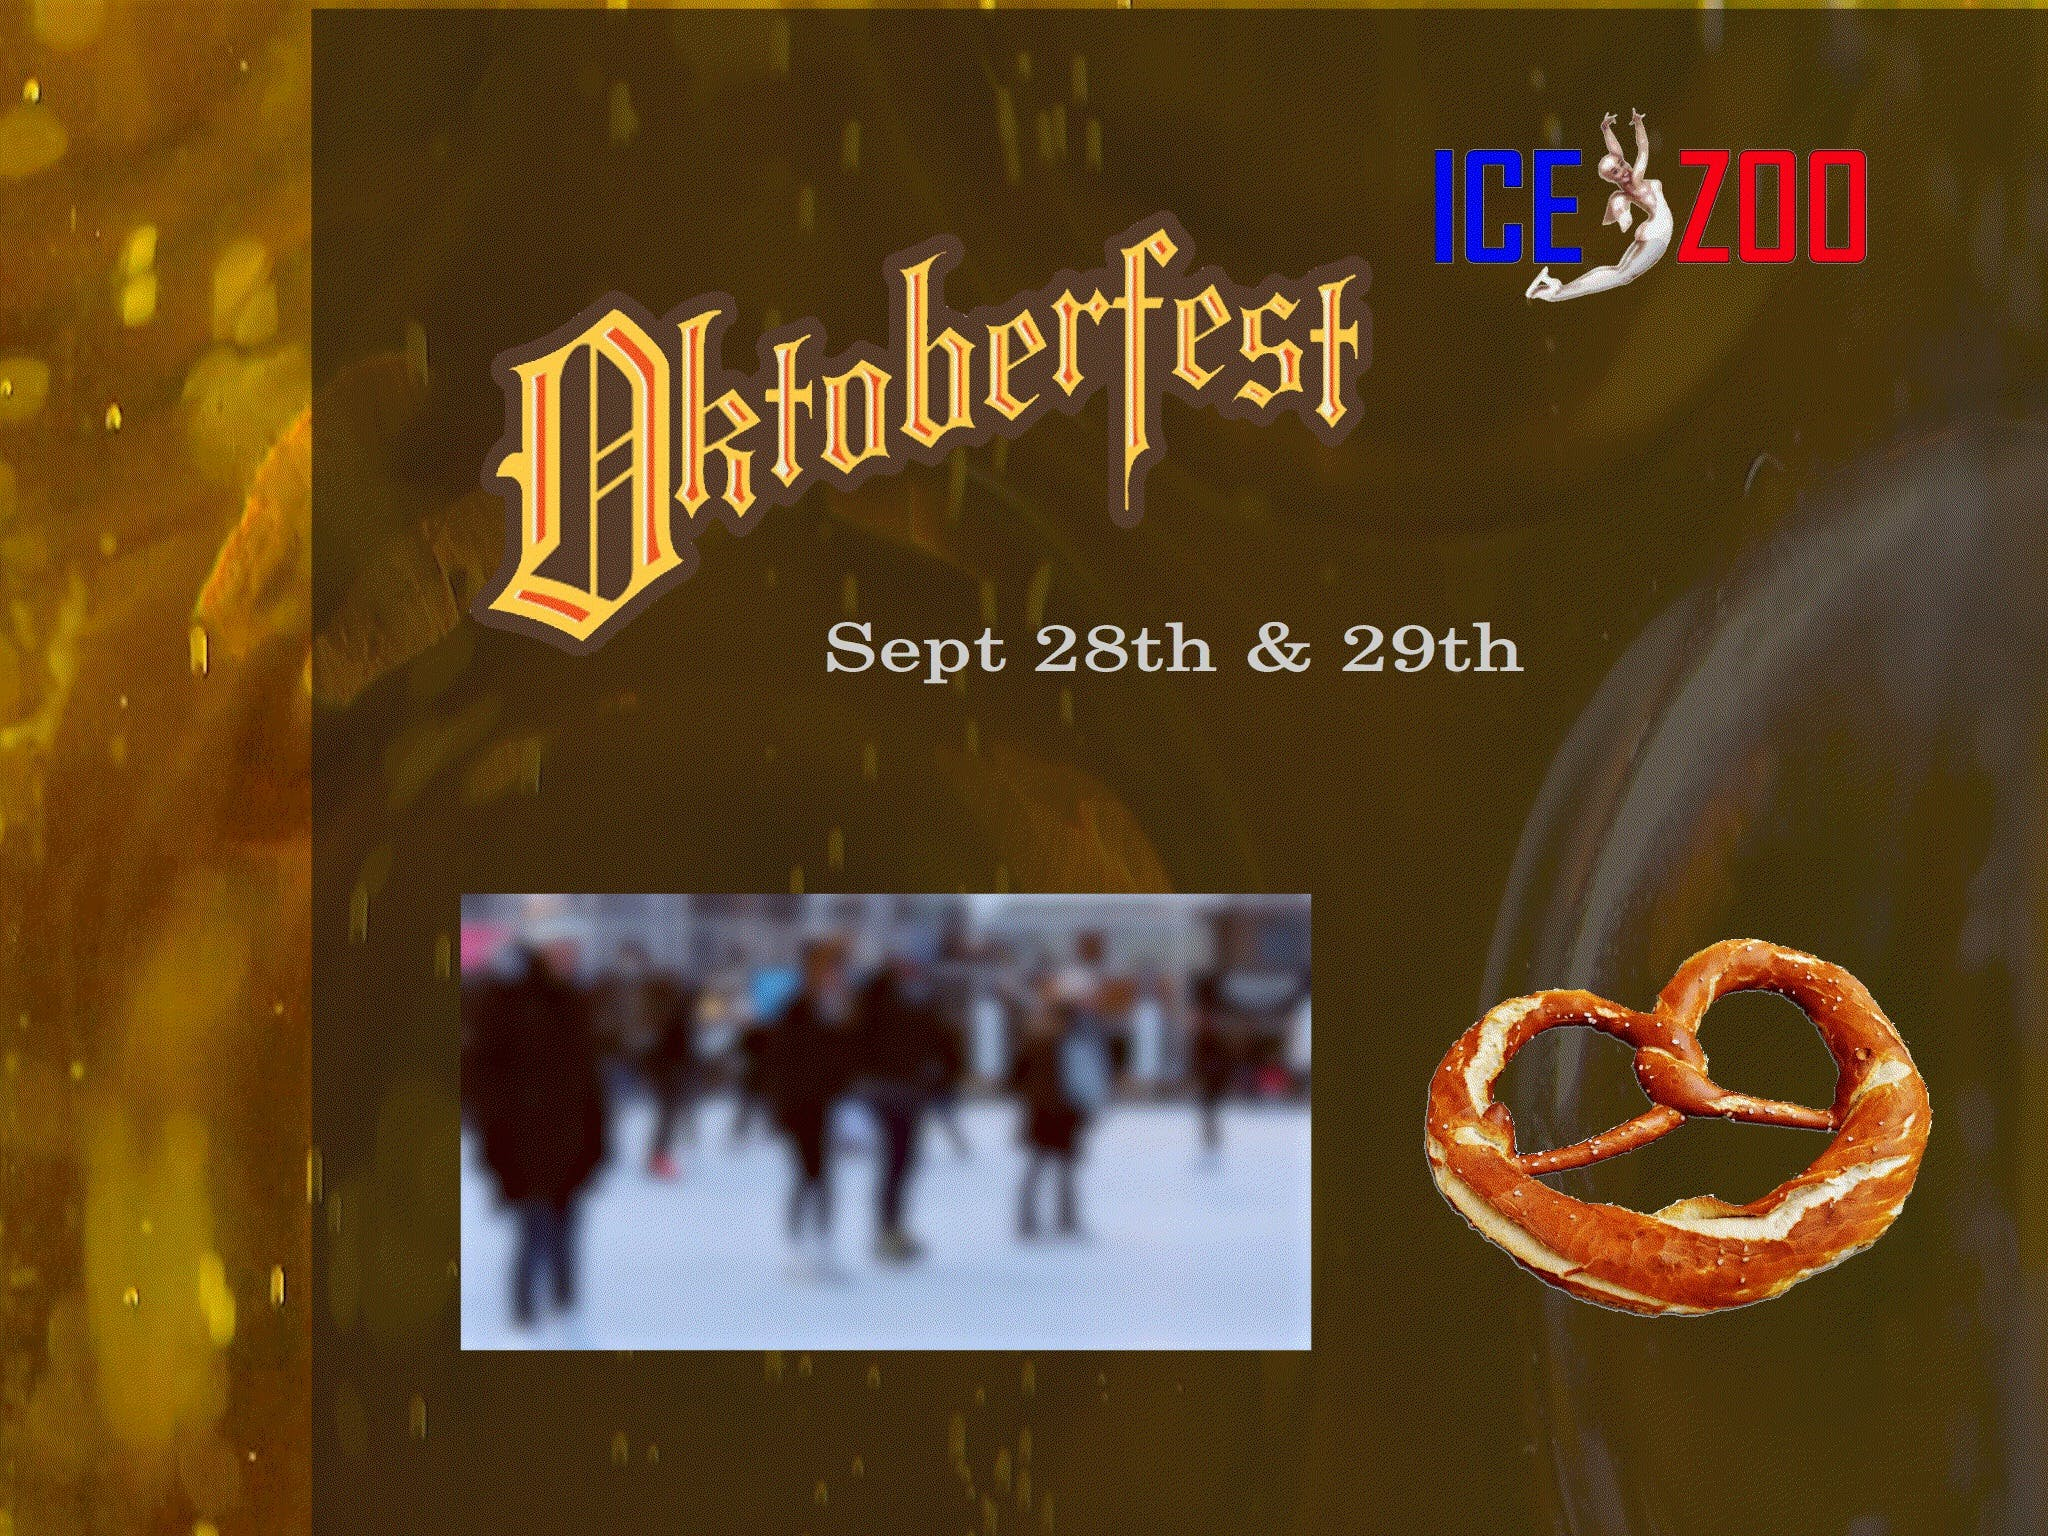 Oktoberfest at Ice Zoo - Accommodation Noosa